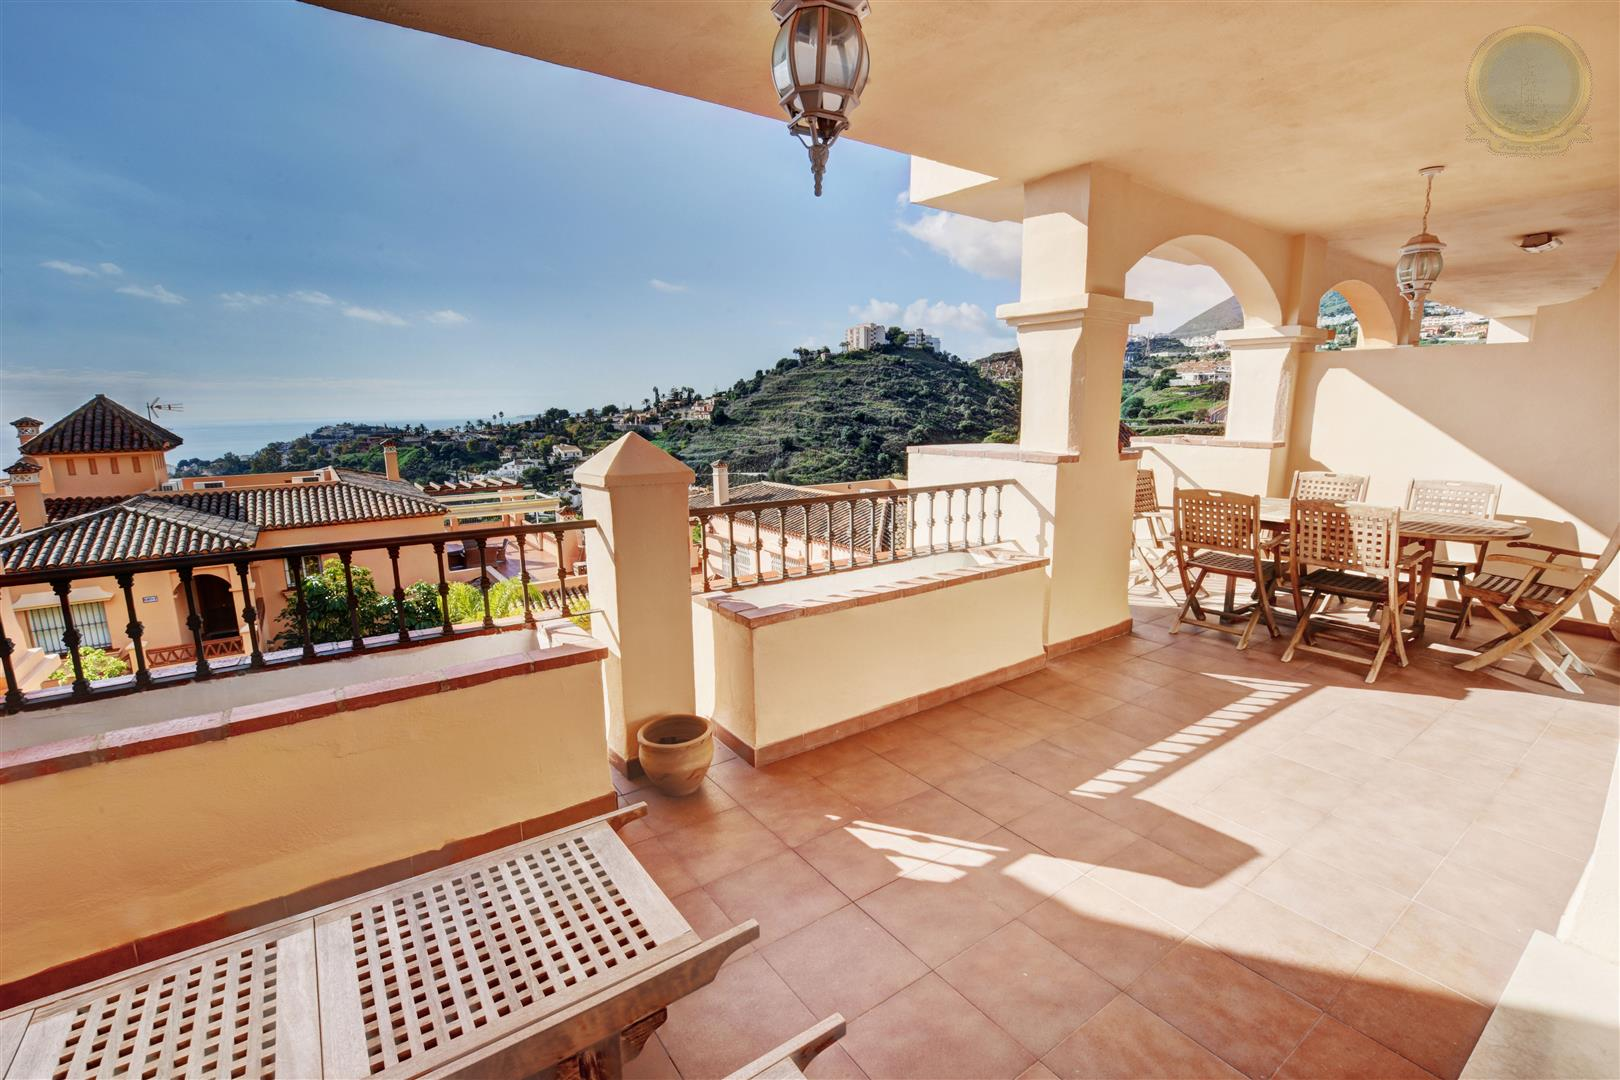 Apartment for Sale in Mediterra - terrace